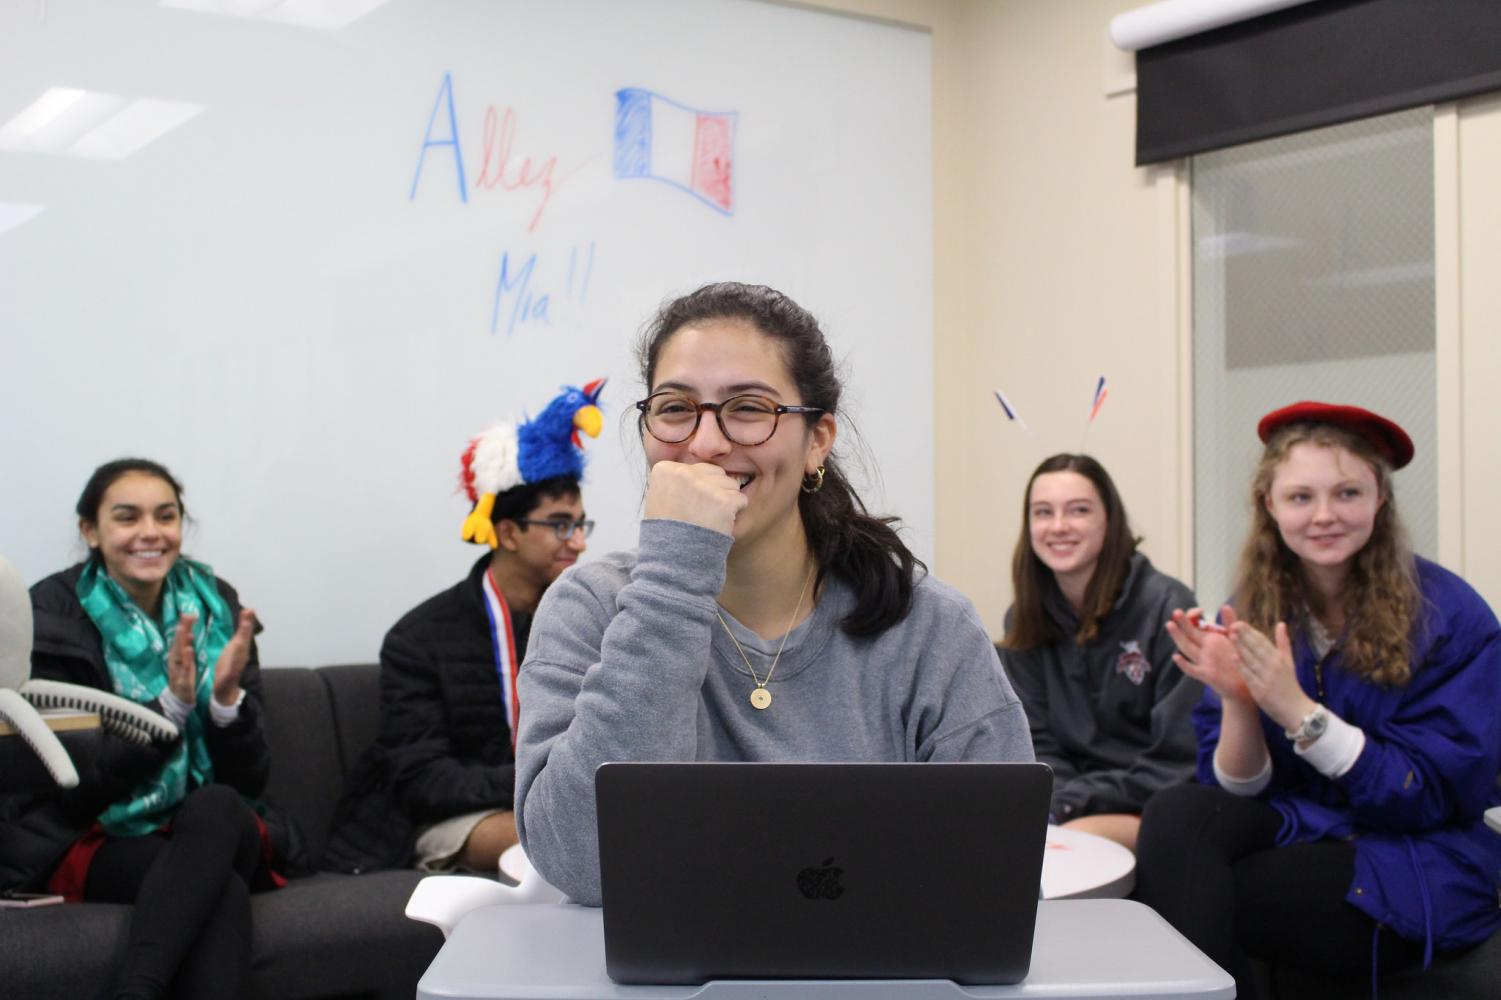 Junior Mia Fares competes in a nationwide French Kahoot! game while fellow peers encourage her.